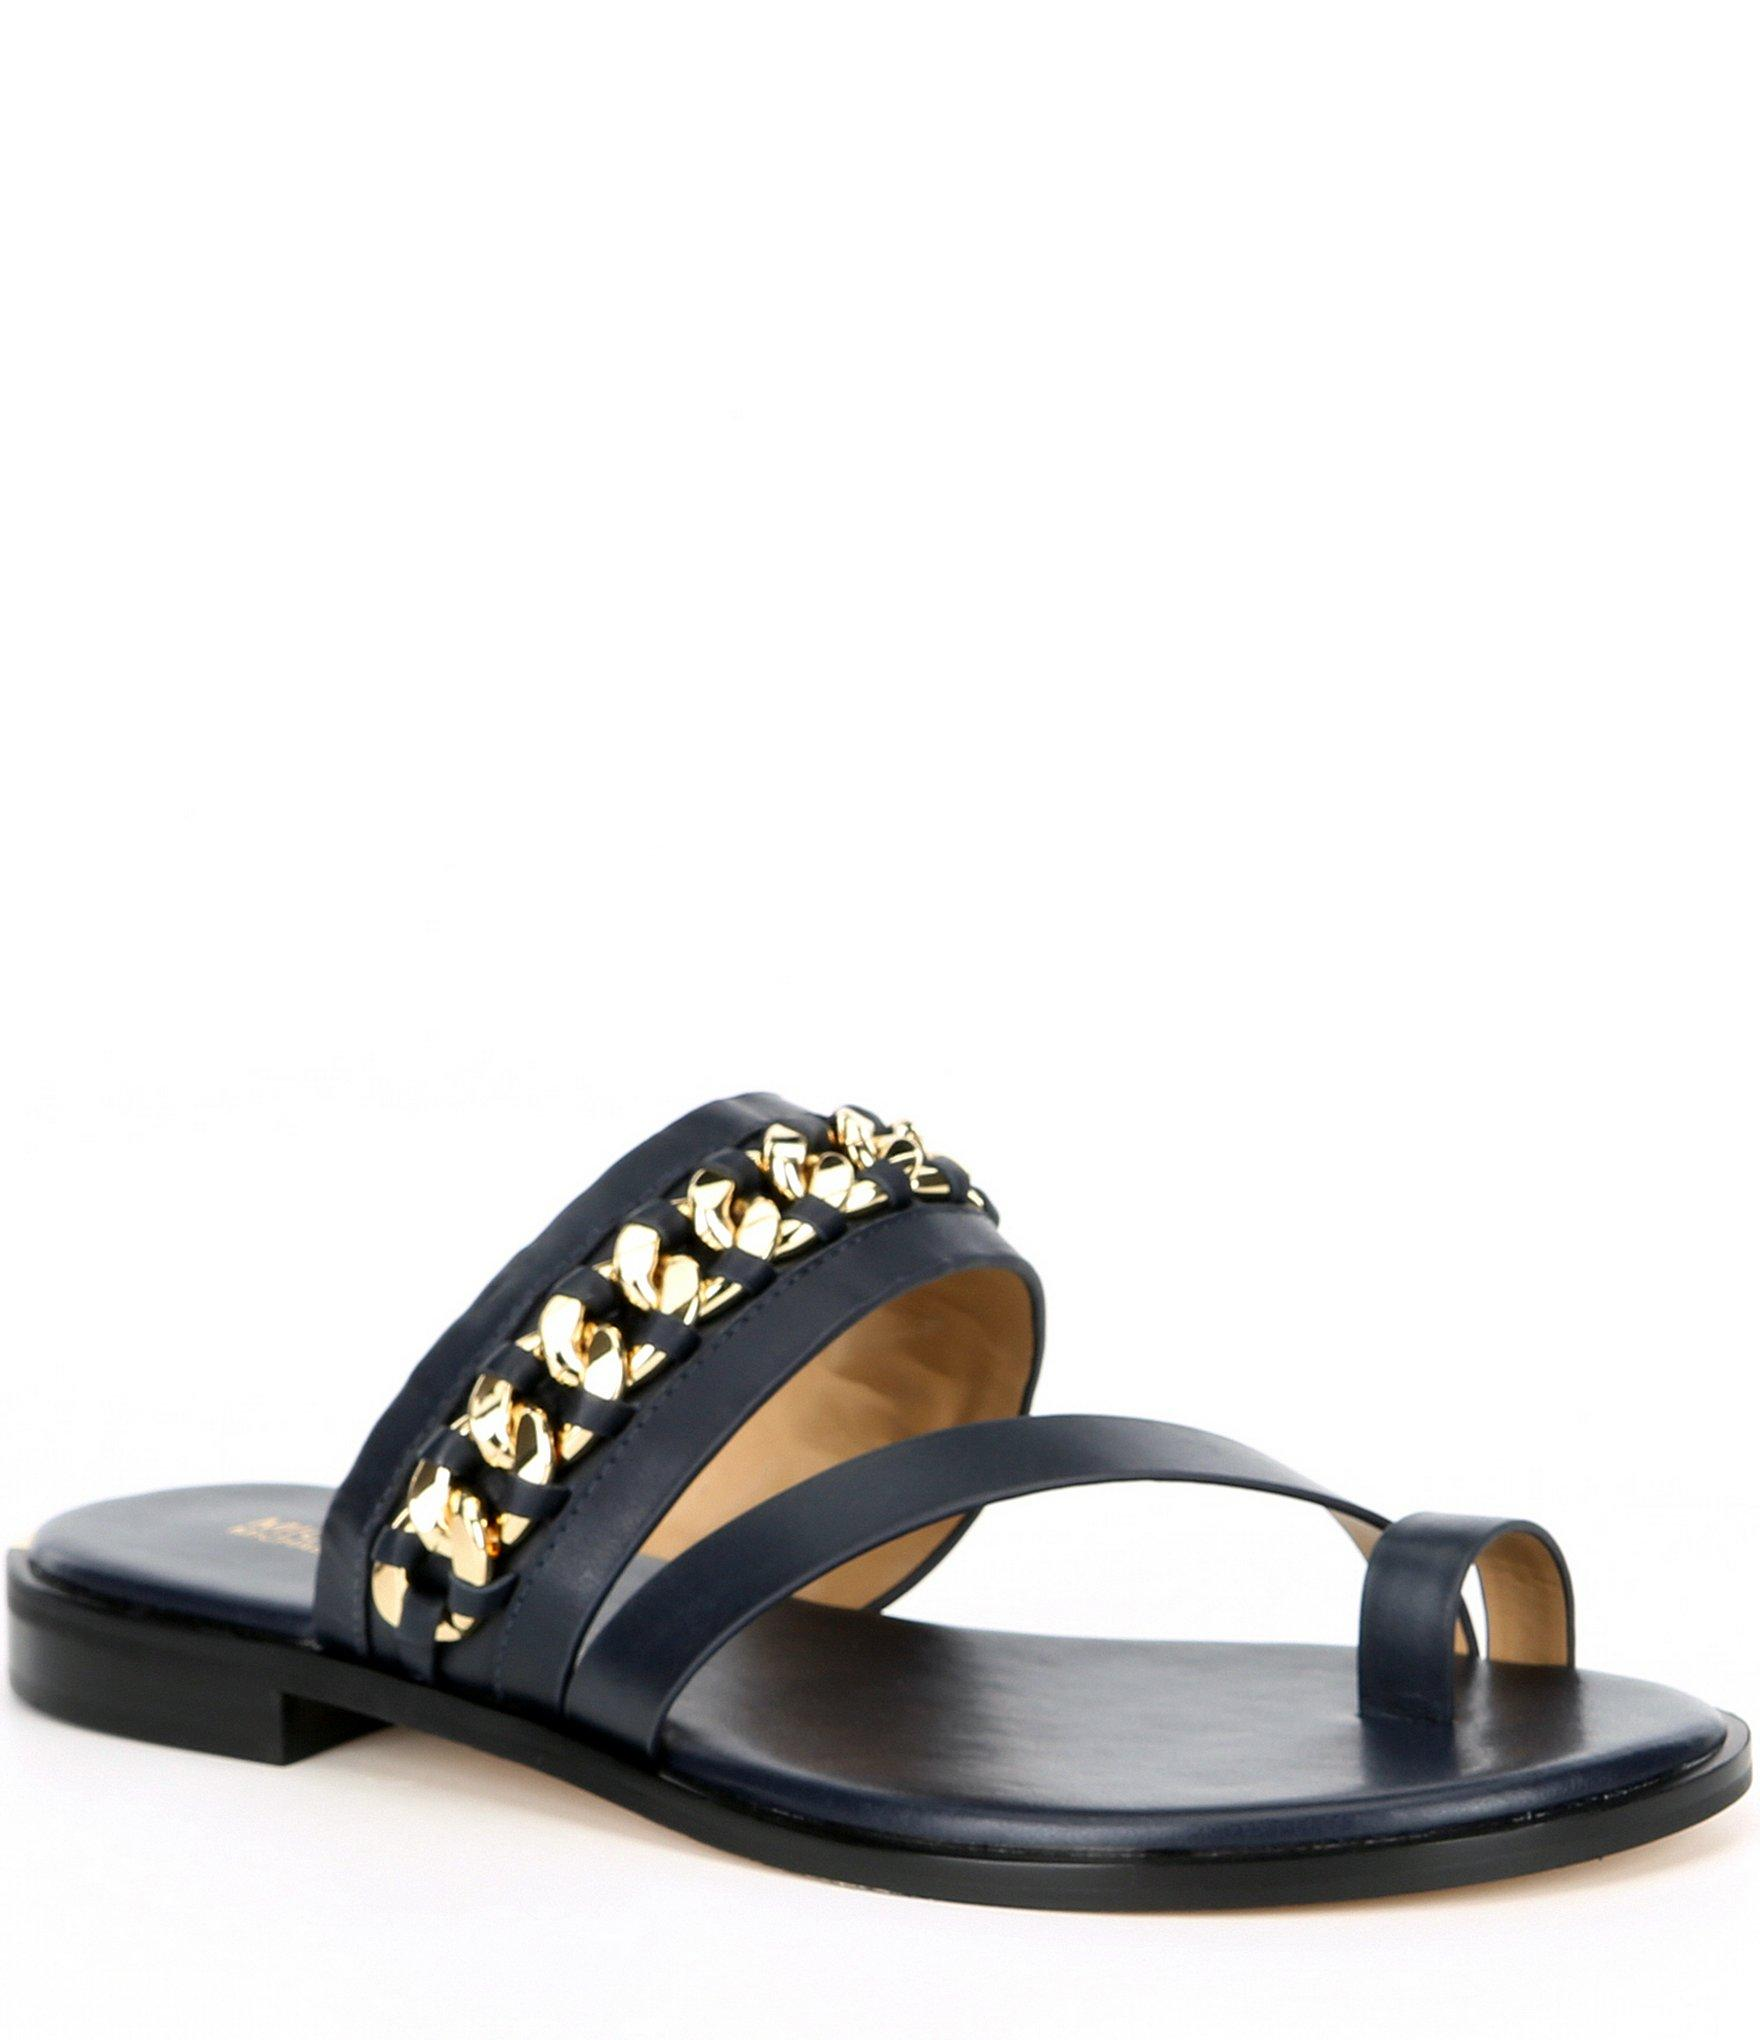 704e3070ff8b MICHAEL Michael Kors - Multicolor Bergen Leather & Chain Embellished Flat  Sandals - Lyst. View fullscreen